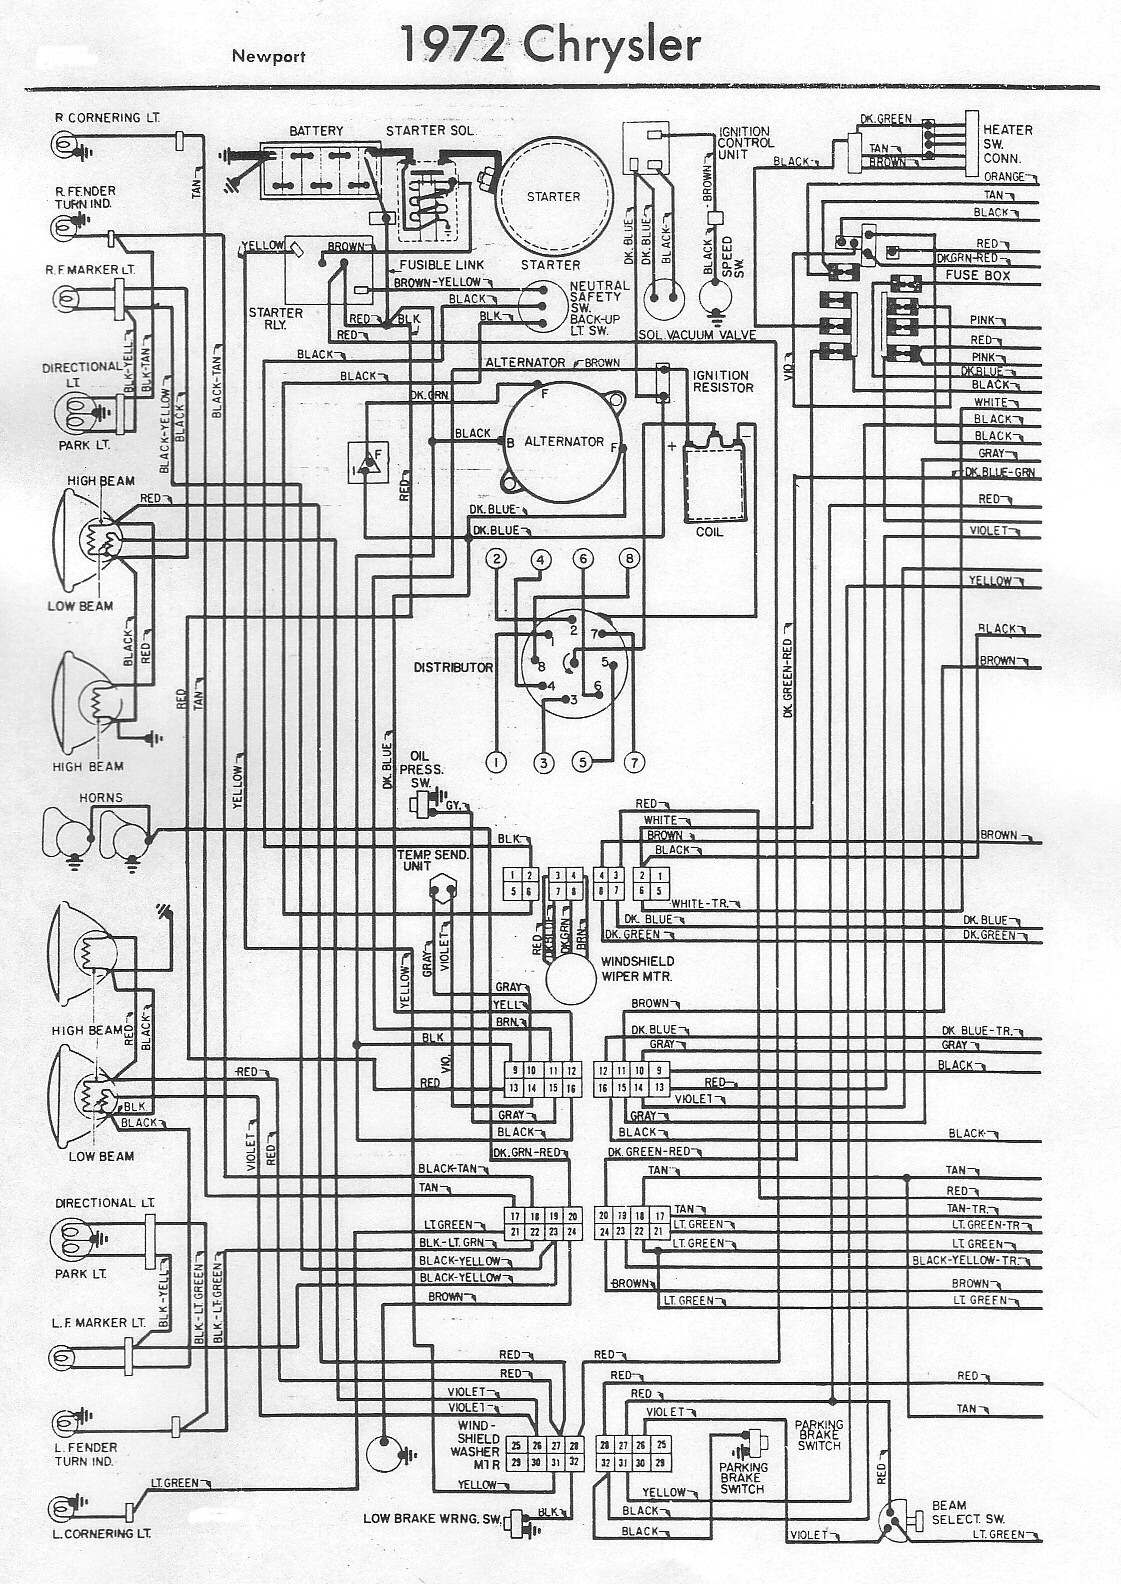 Prime 1966 Chrysler Ignition Wiring Diagram Wiring Library Wiring Digital Resources Unprprontobusorg